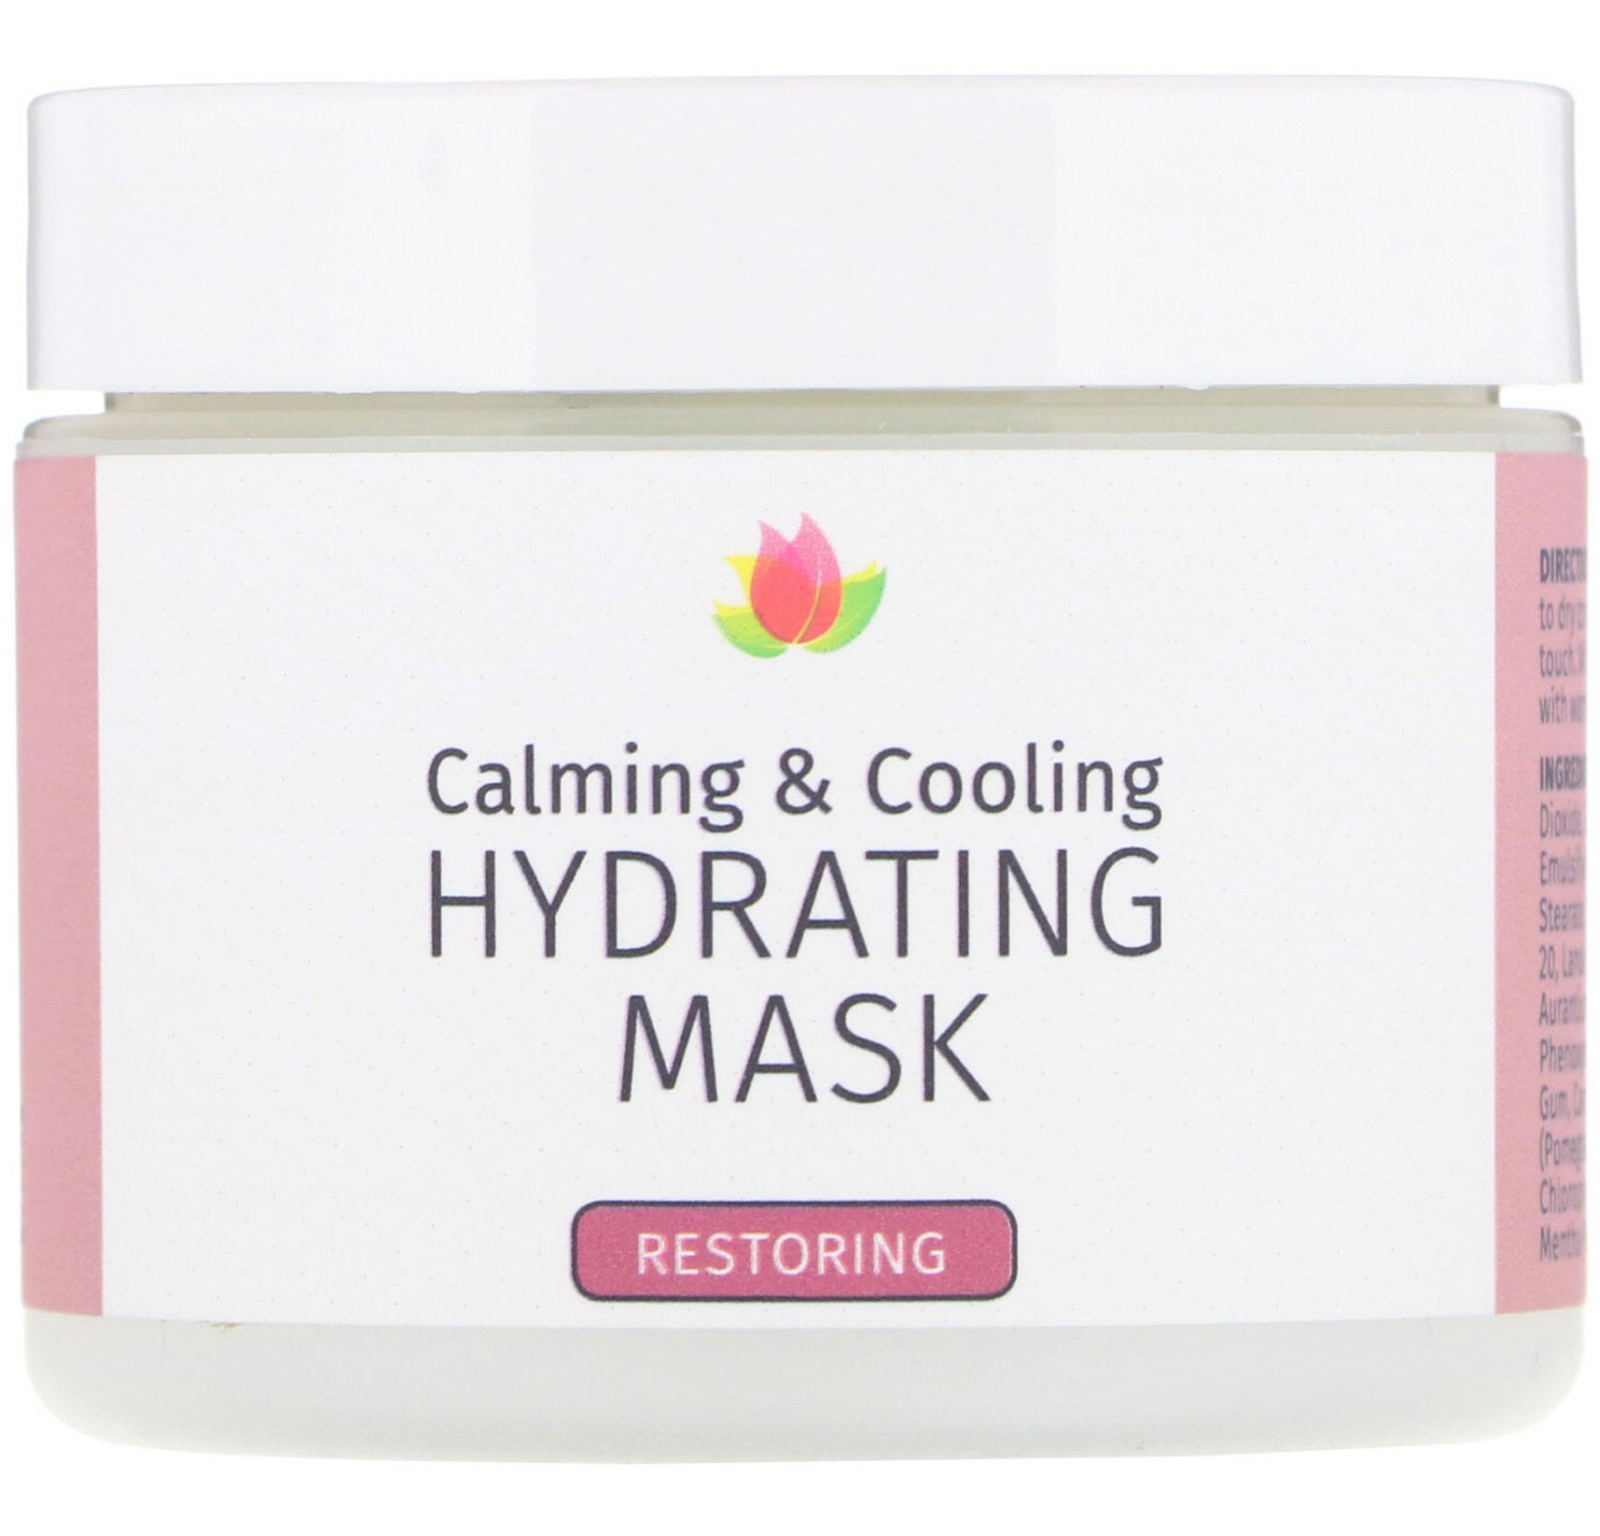 Reviva Labs Calming & Cooling, Hydrating Mask